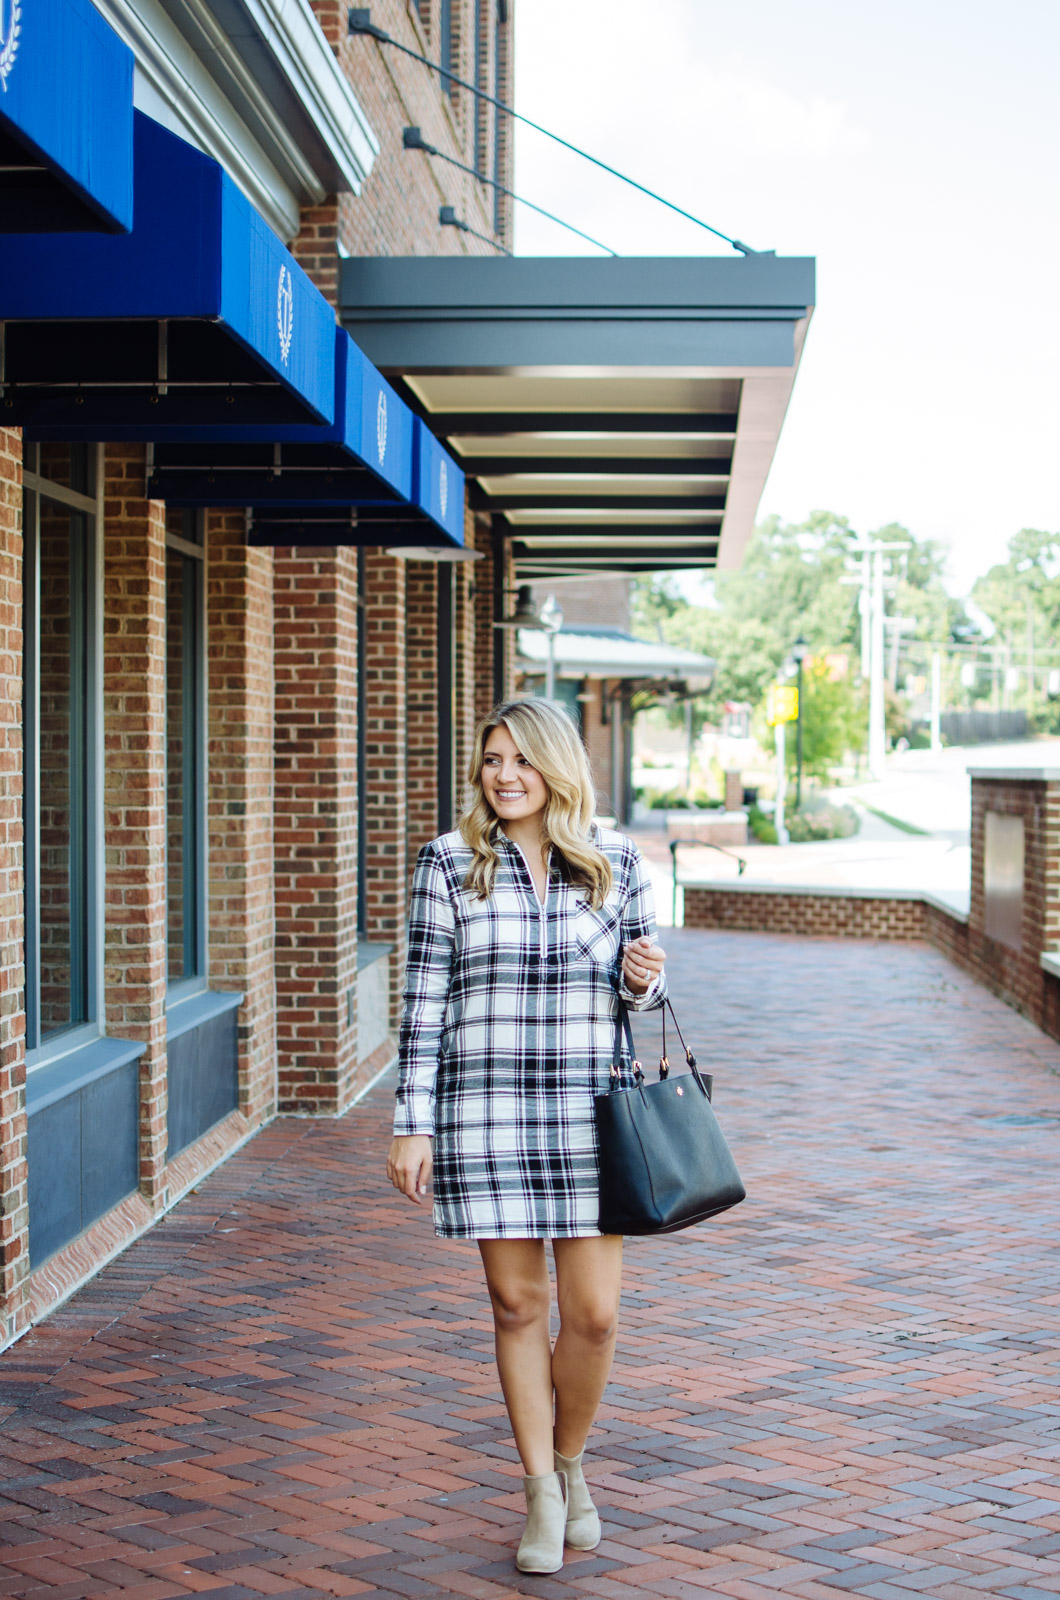 fall outfit ideas - flannel plaid dress outfit | For the cutest Fall outfits click through to bylaurenm.com!